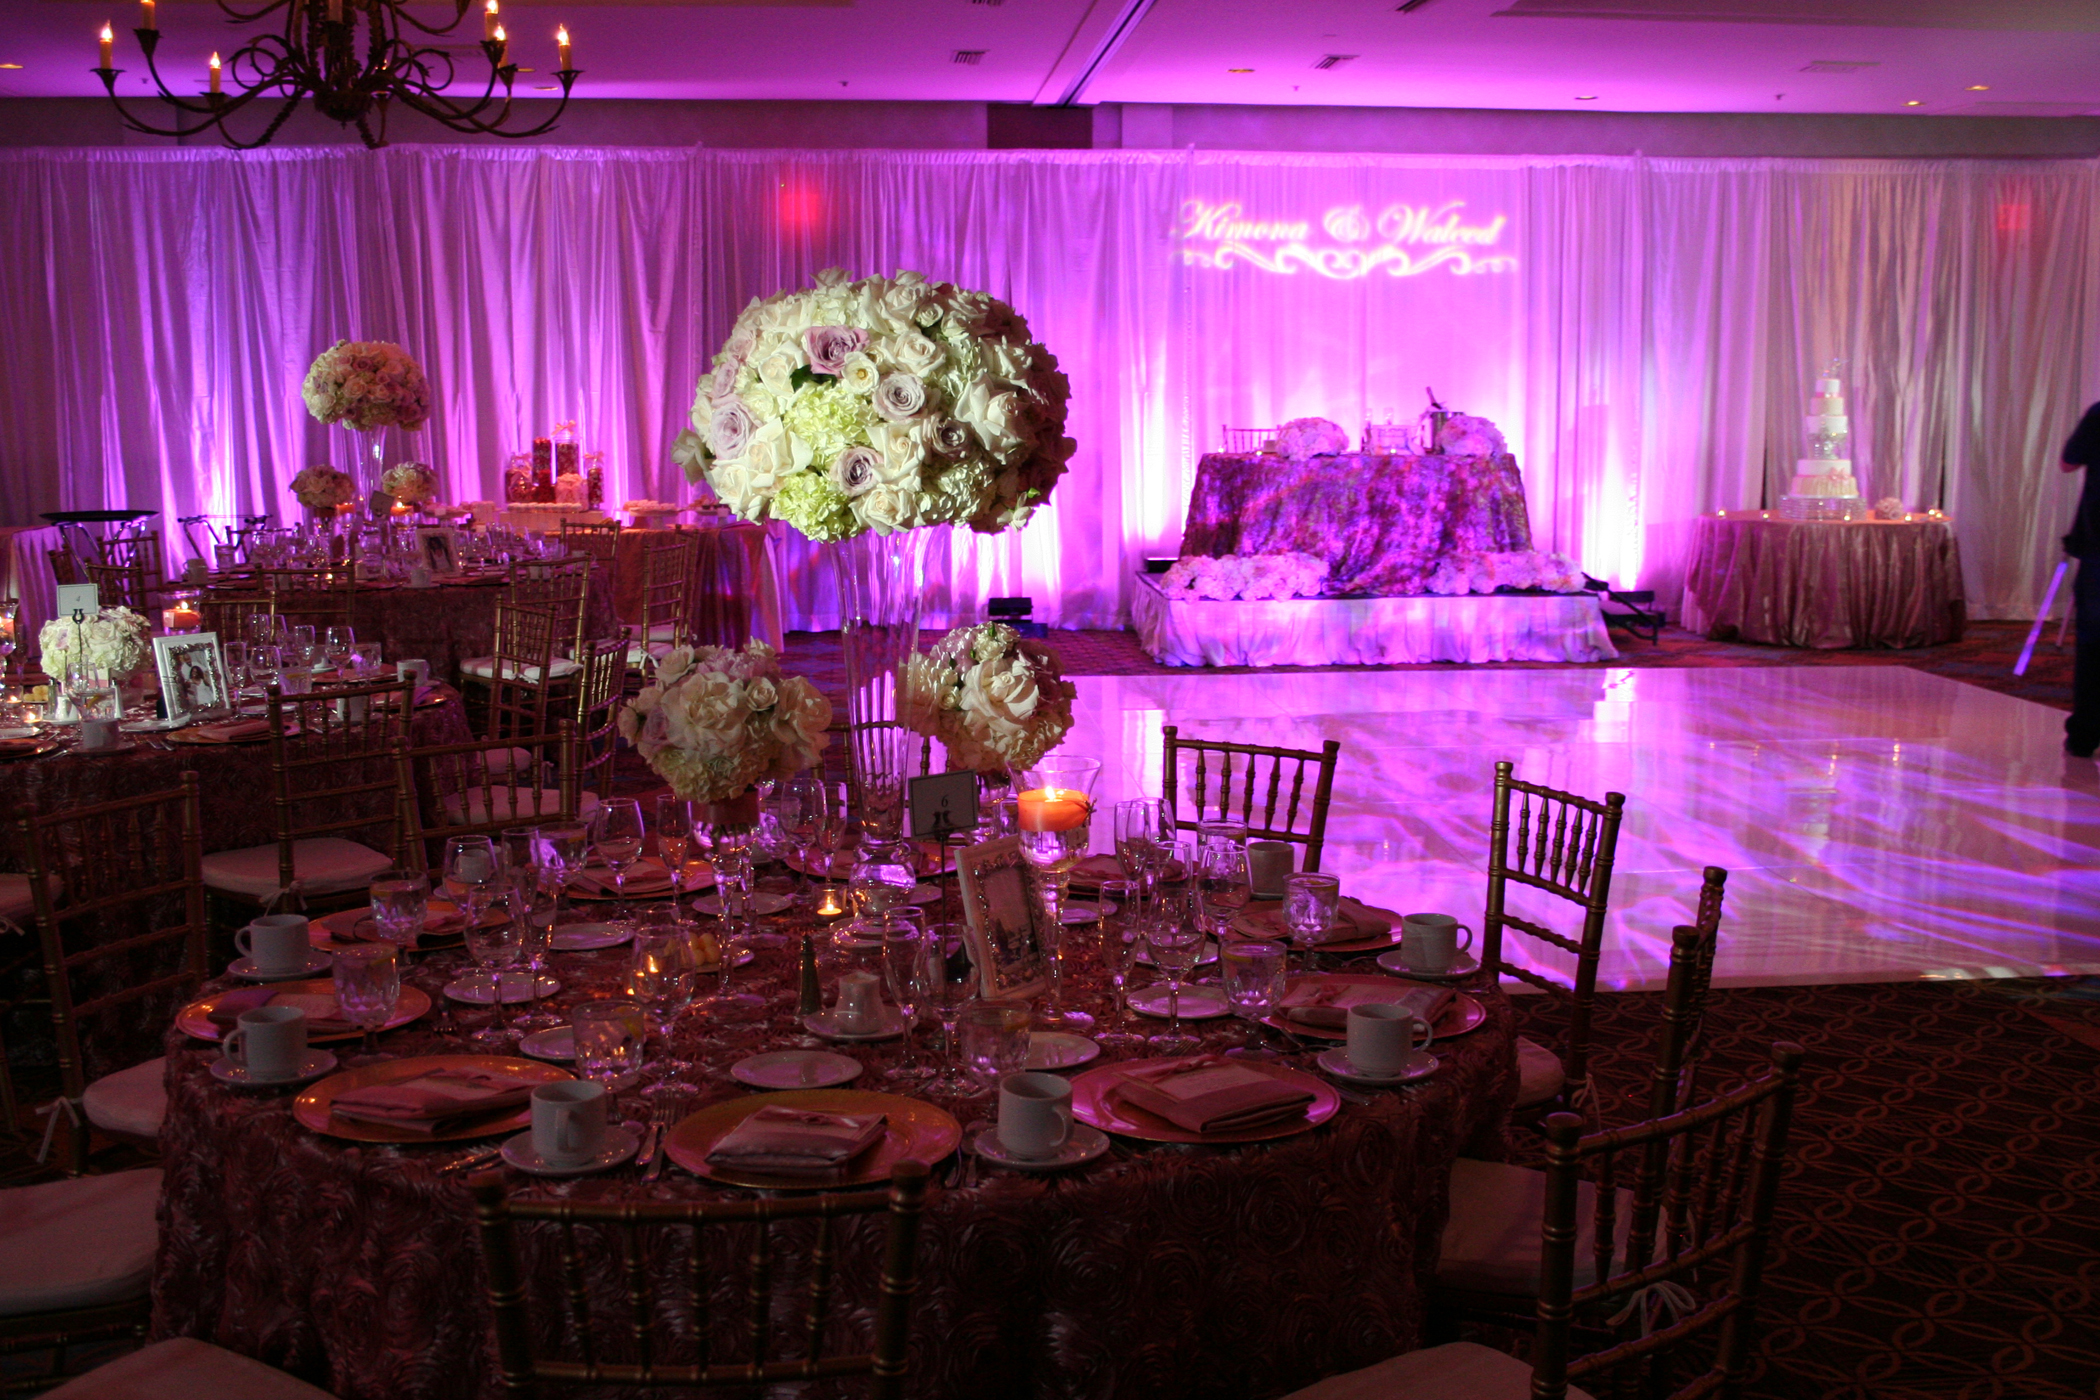 Uplighting Ballroom & Centerpiece